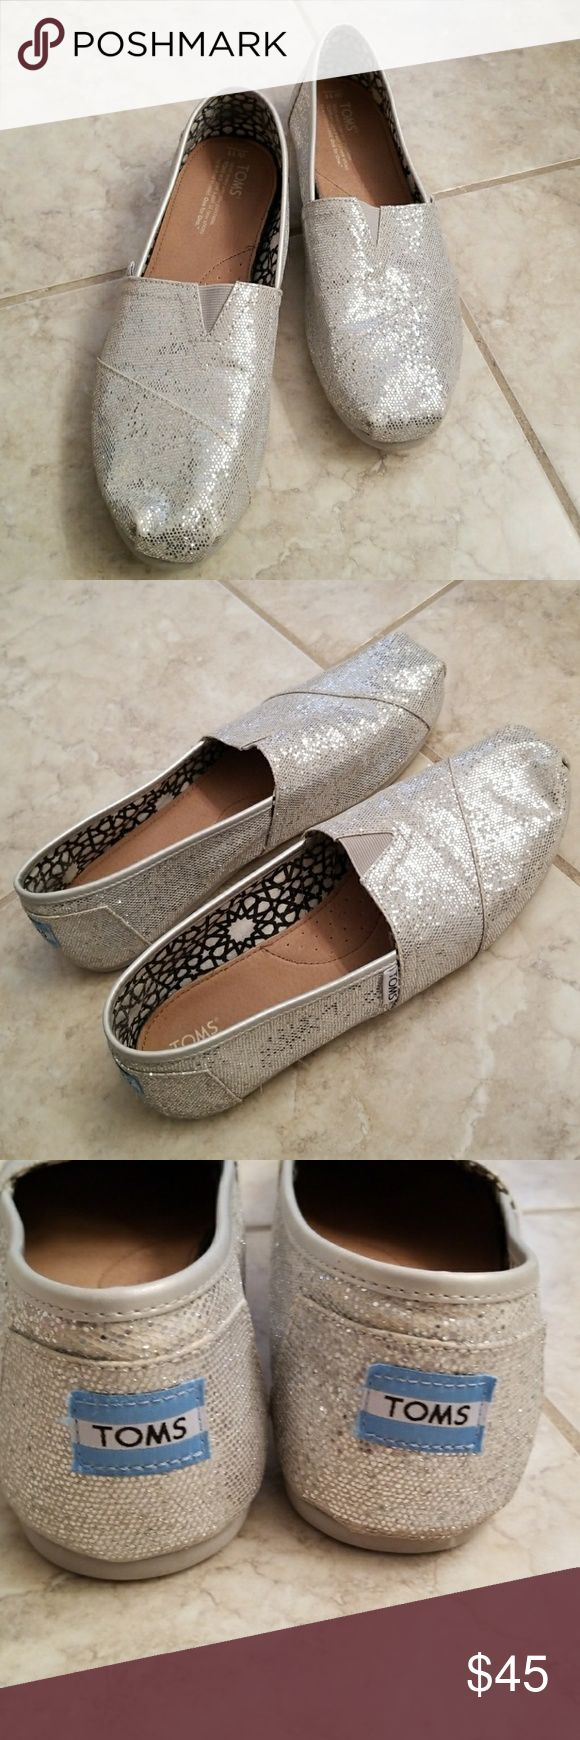 Worn once silver glitter Toms size 11 Wore once for my wedding, only slightest wear on bottom sole, otherwise look brand new. Have original box. Toms Shoes Flats & Loafers